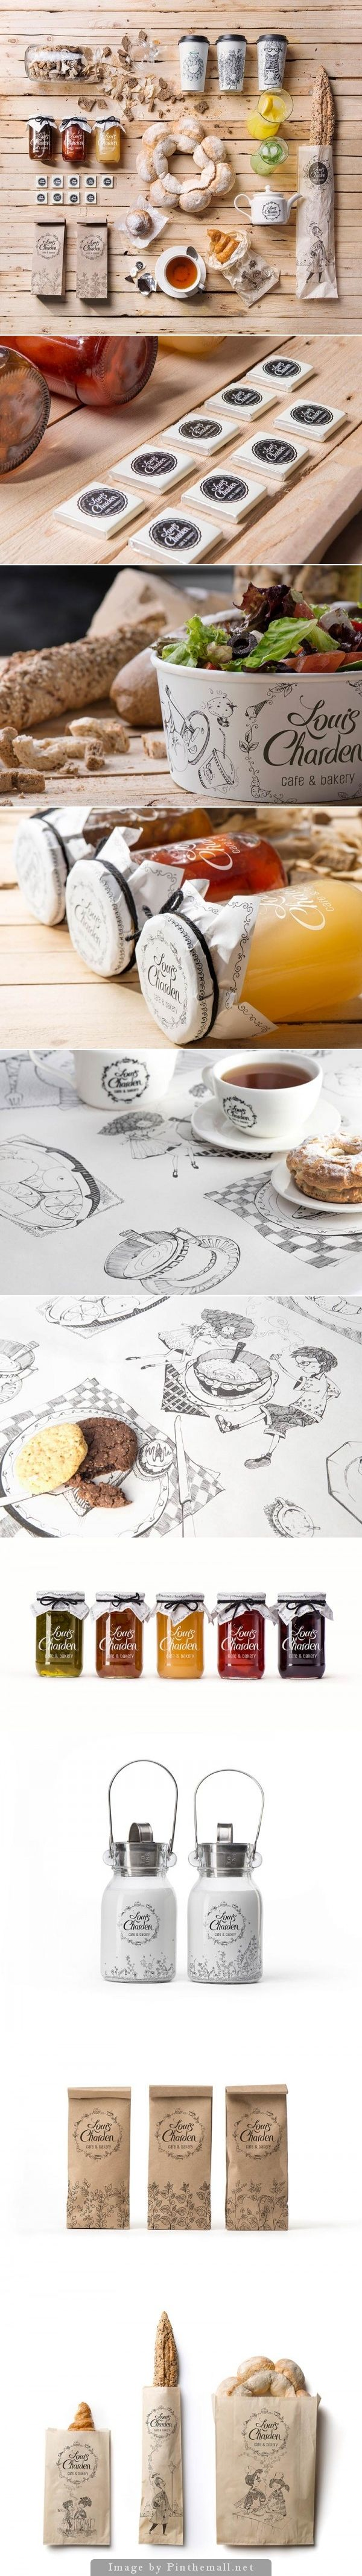 Identity / Louis Charden – Cafe & Bakery Identity by Backbone Branding